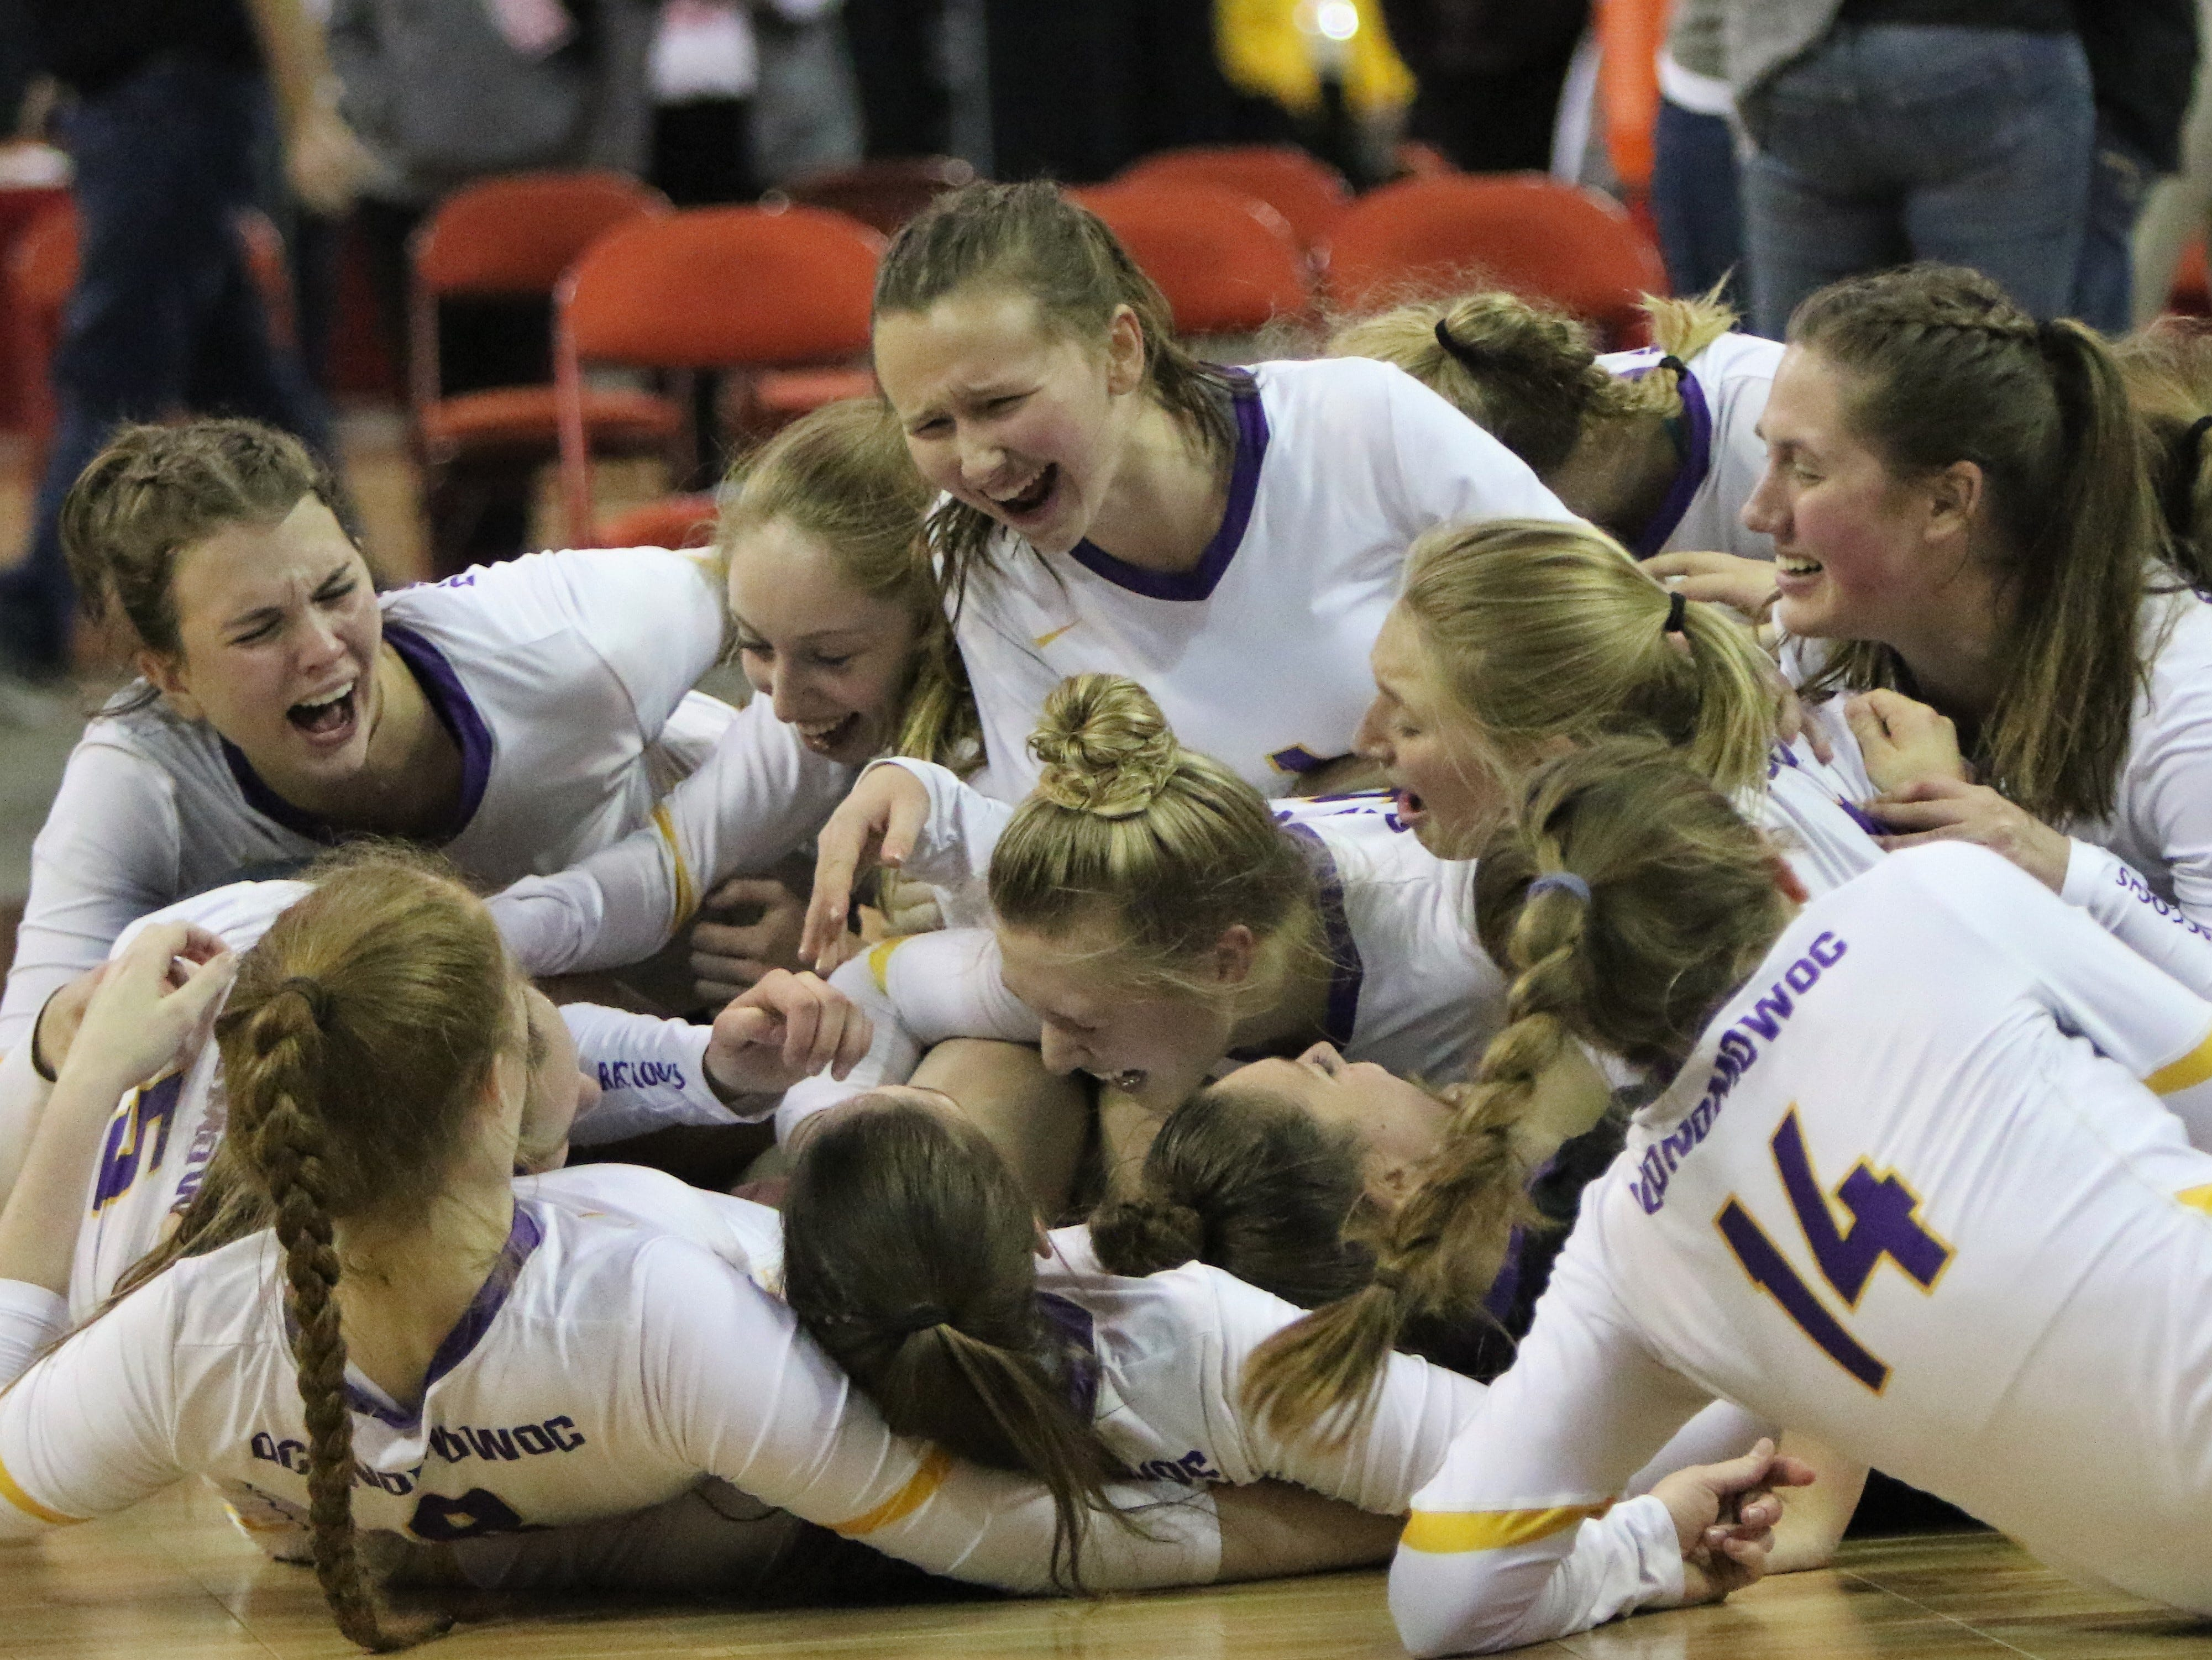 Oconomowoc girls volleyball celebrates its comeback win over River Falls in a Division 1 semifinal on Friday.